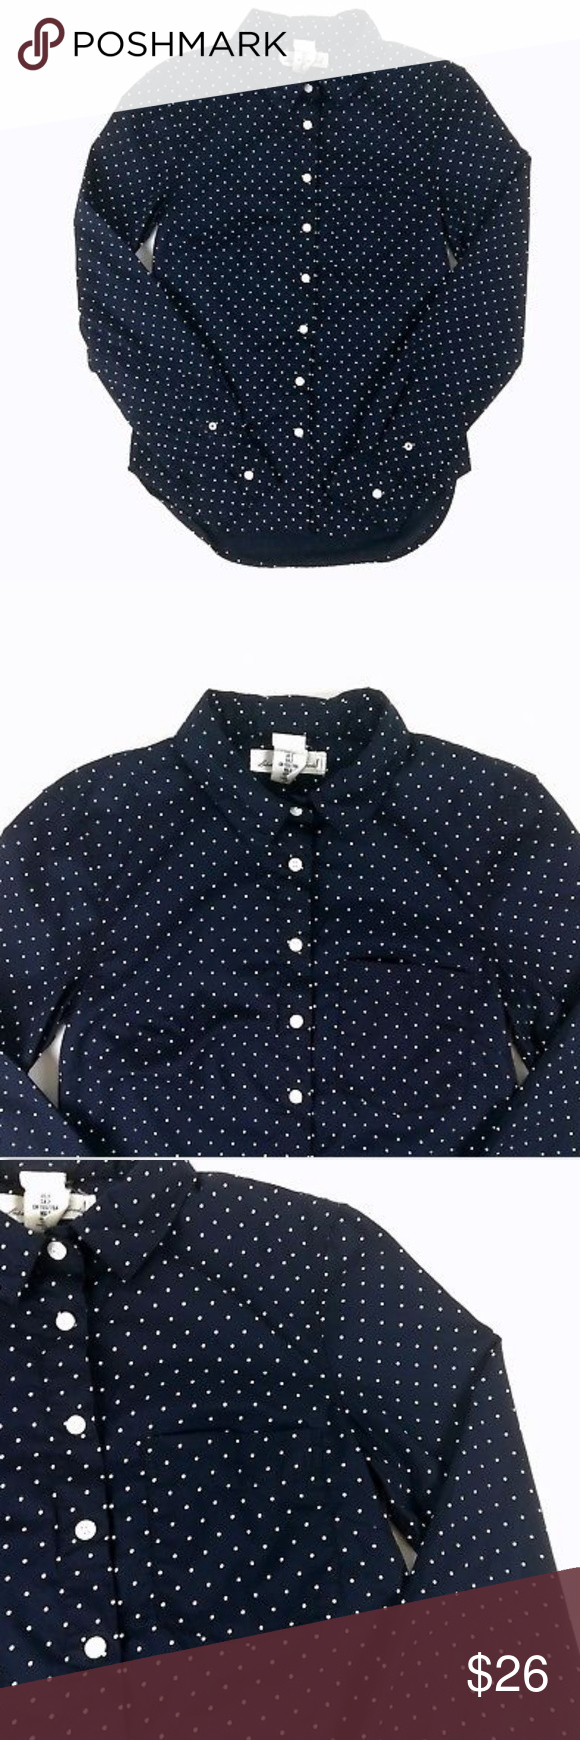 a8f565c1f4d74 Label of Graded Goods button down top women s 2      Qualifies for 3 for   25 deal      Label of Graded Goods H M button down top women s size 2 long  sleeve ...